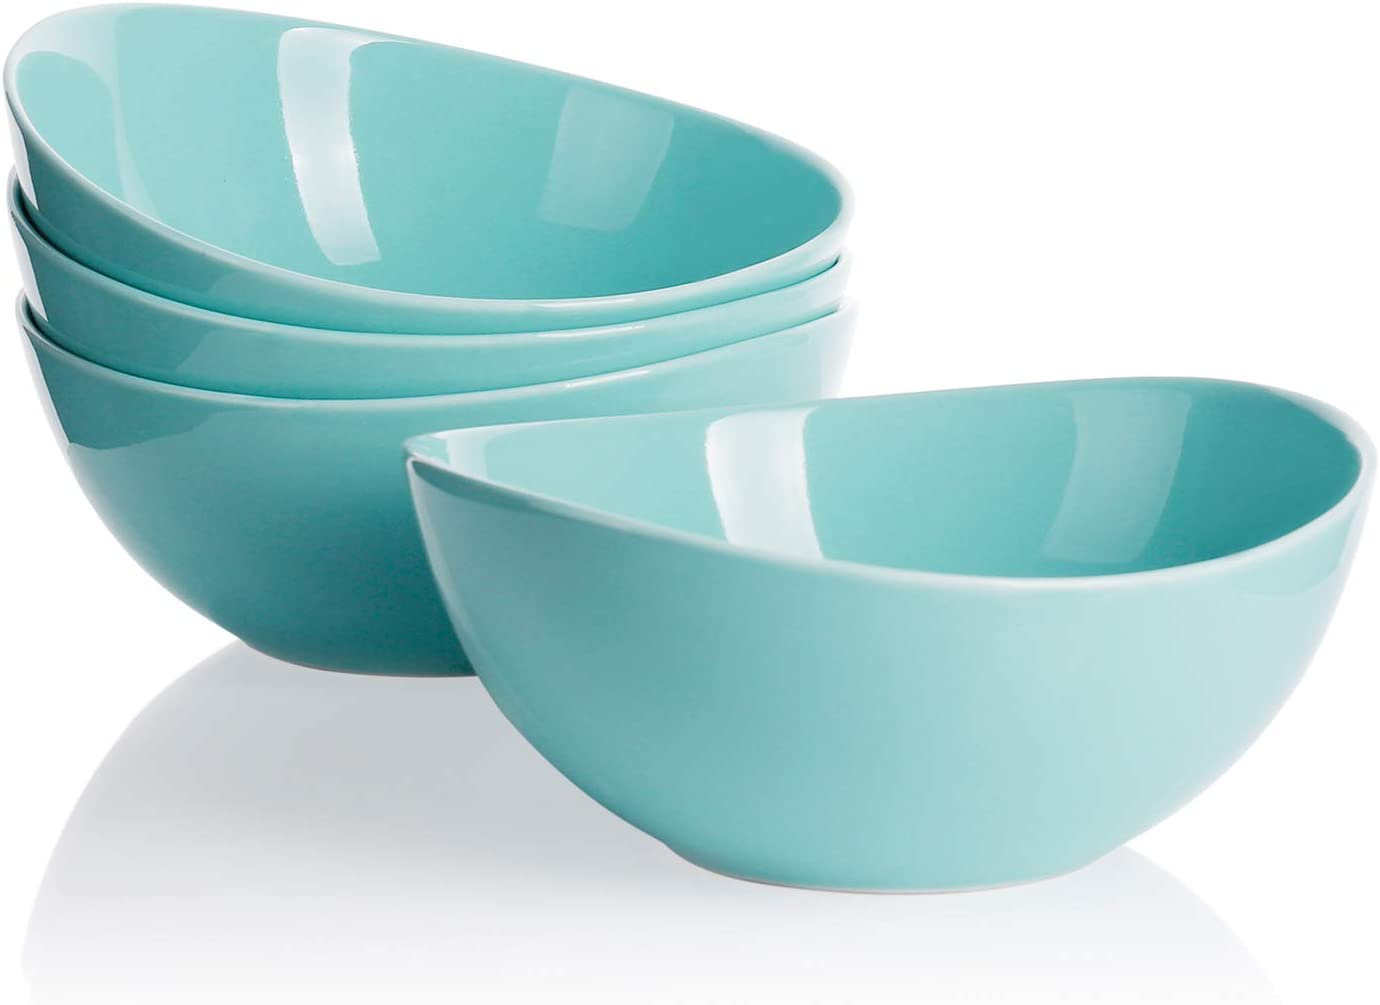 Sweese 103.402 Porcelain Bowls - 28 Ounce for Cereal, Salad and Desserts - Set of 4, Turquoise